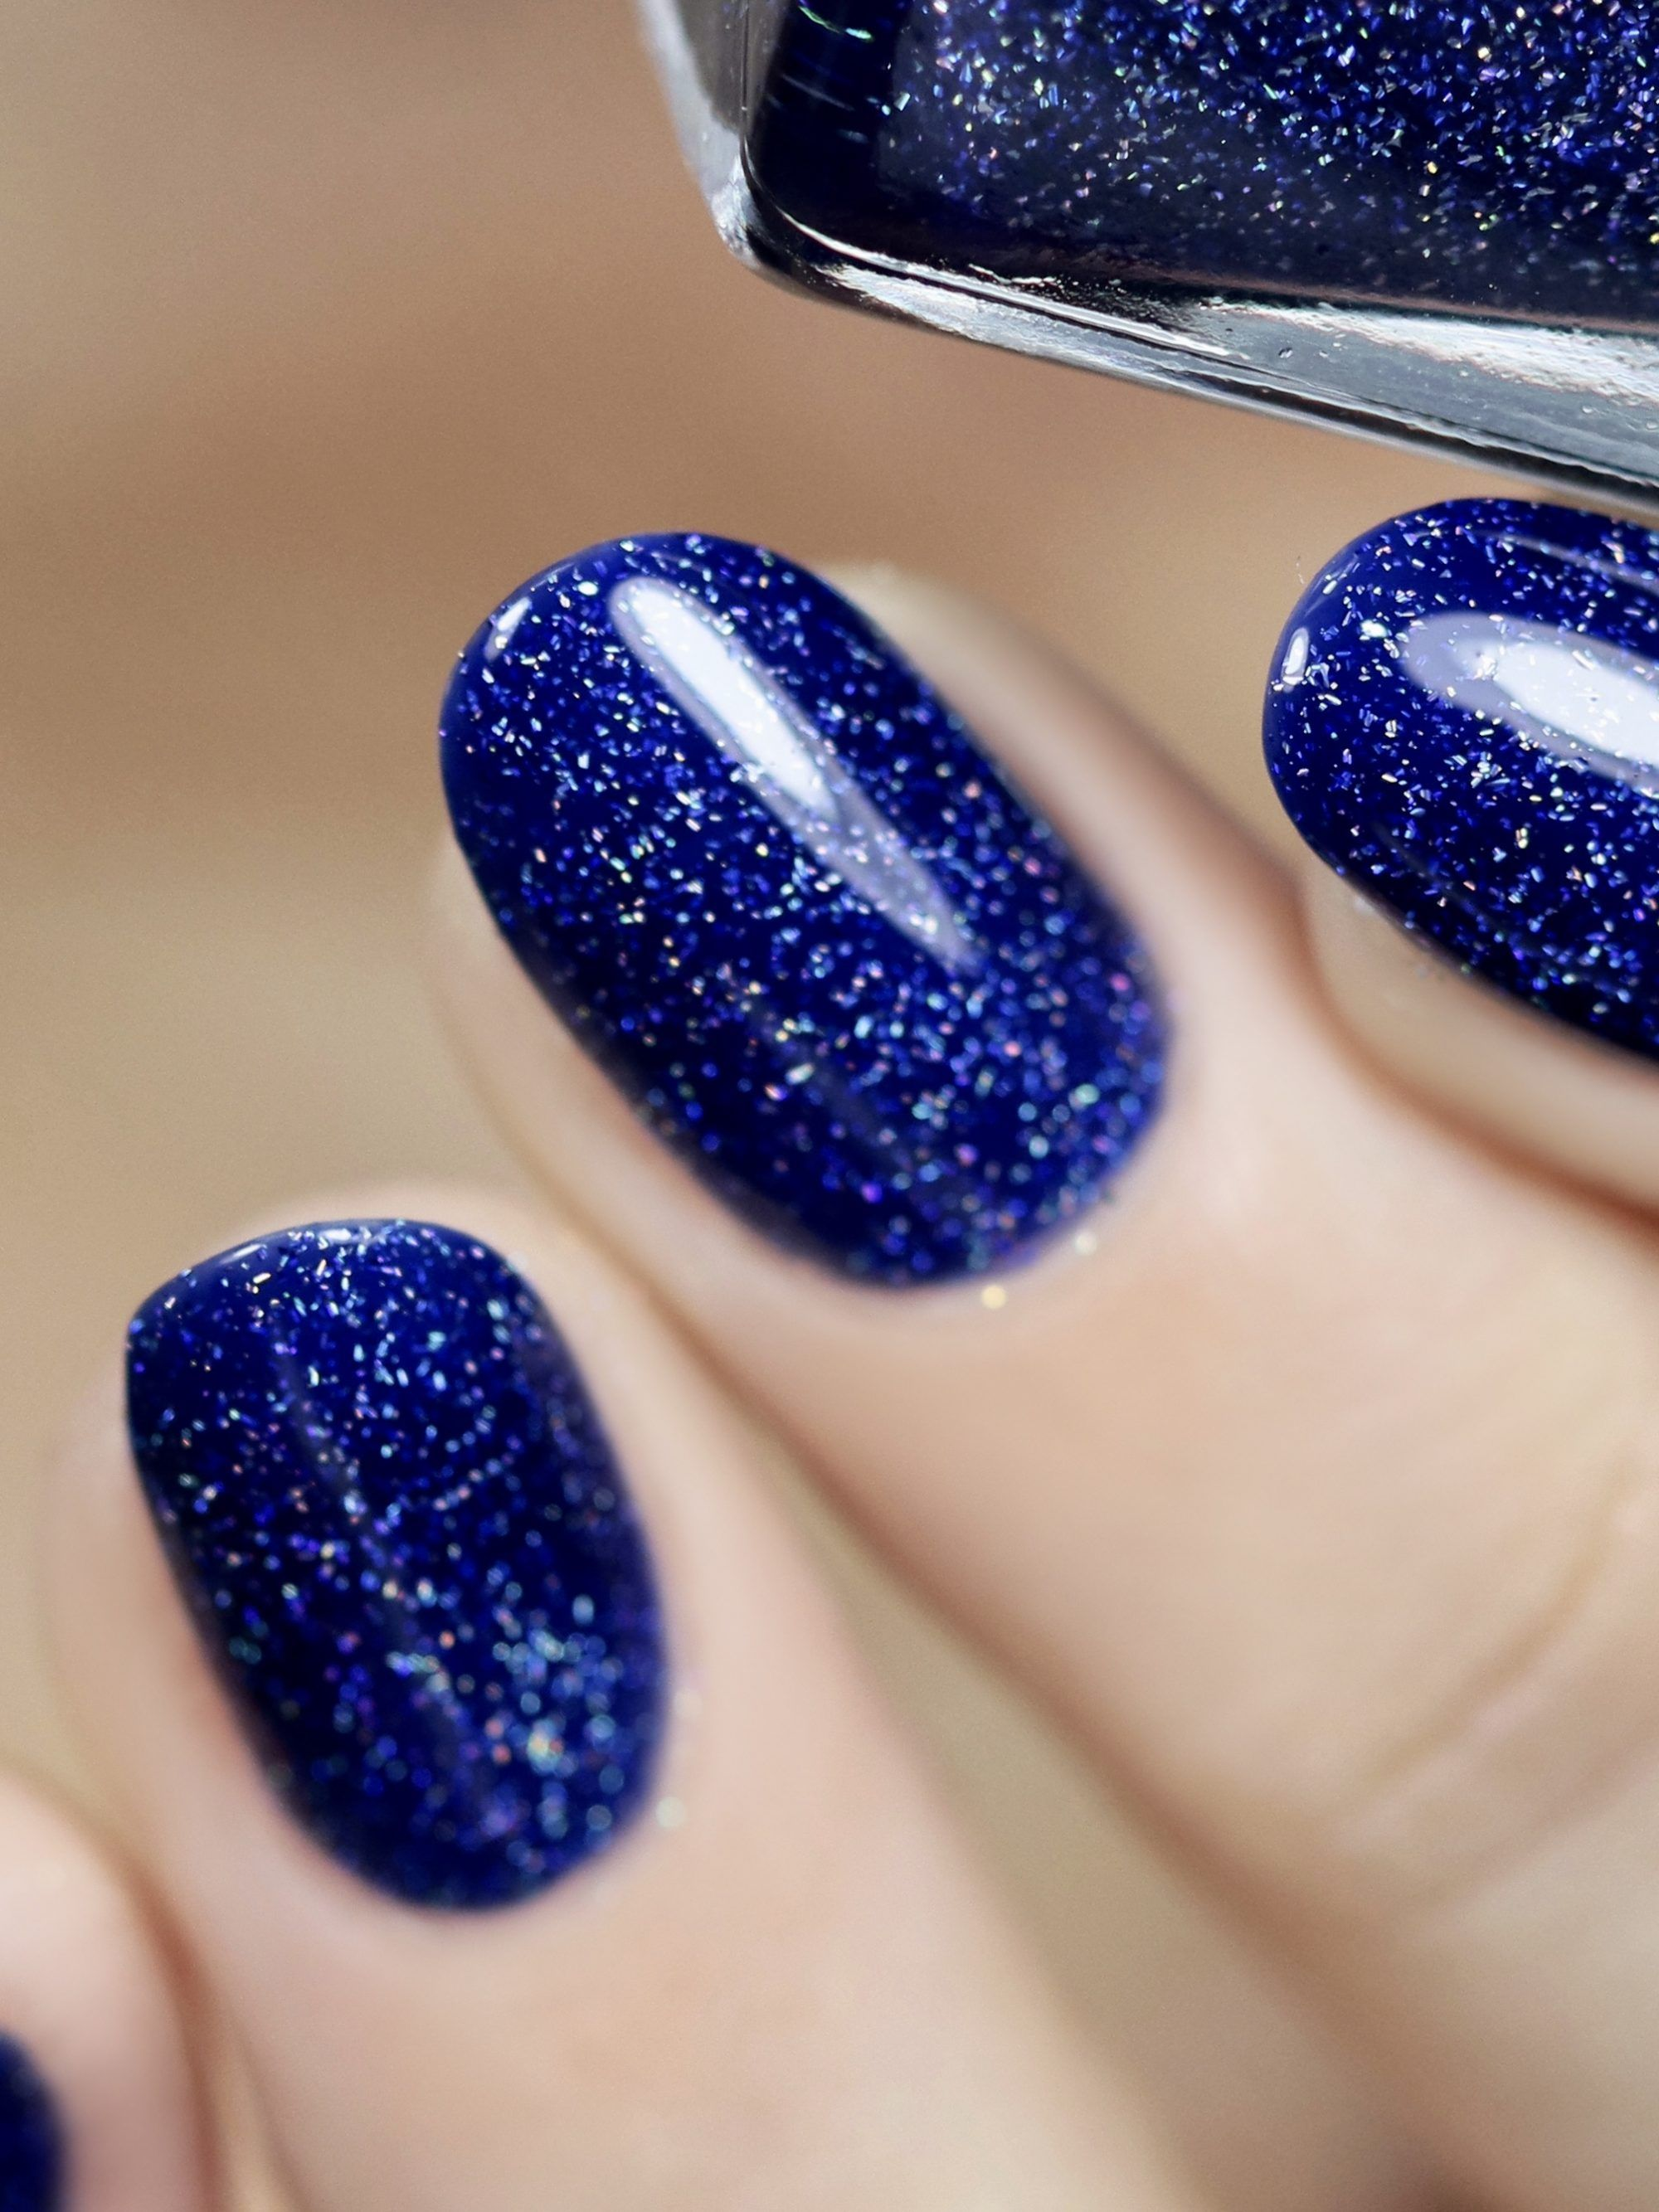 set sail navy blue holographic jelly nail polish by ilnp in 2020 blue glitter nails blue gel nails navy blue nails pinterest